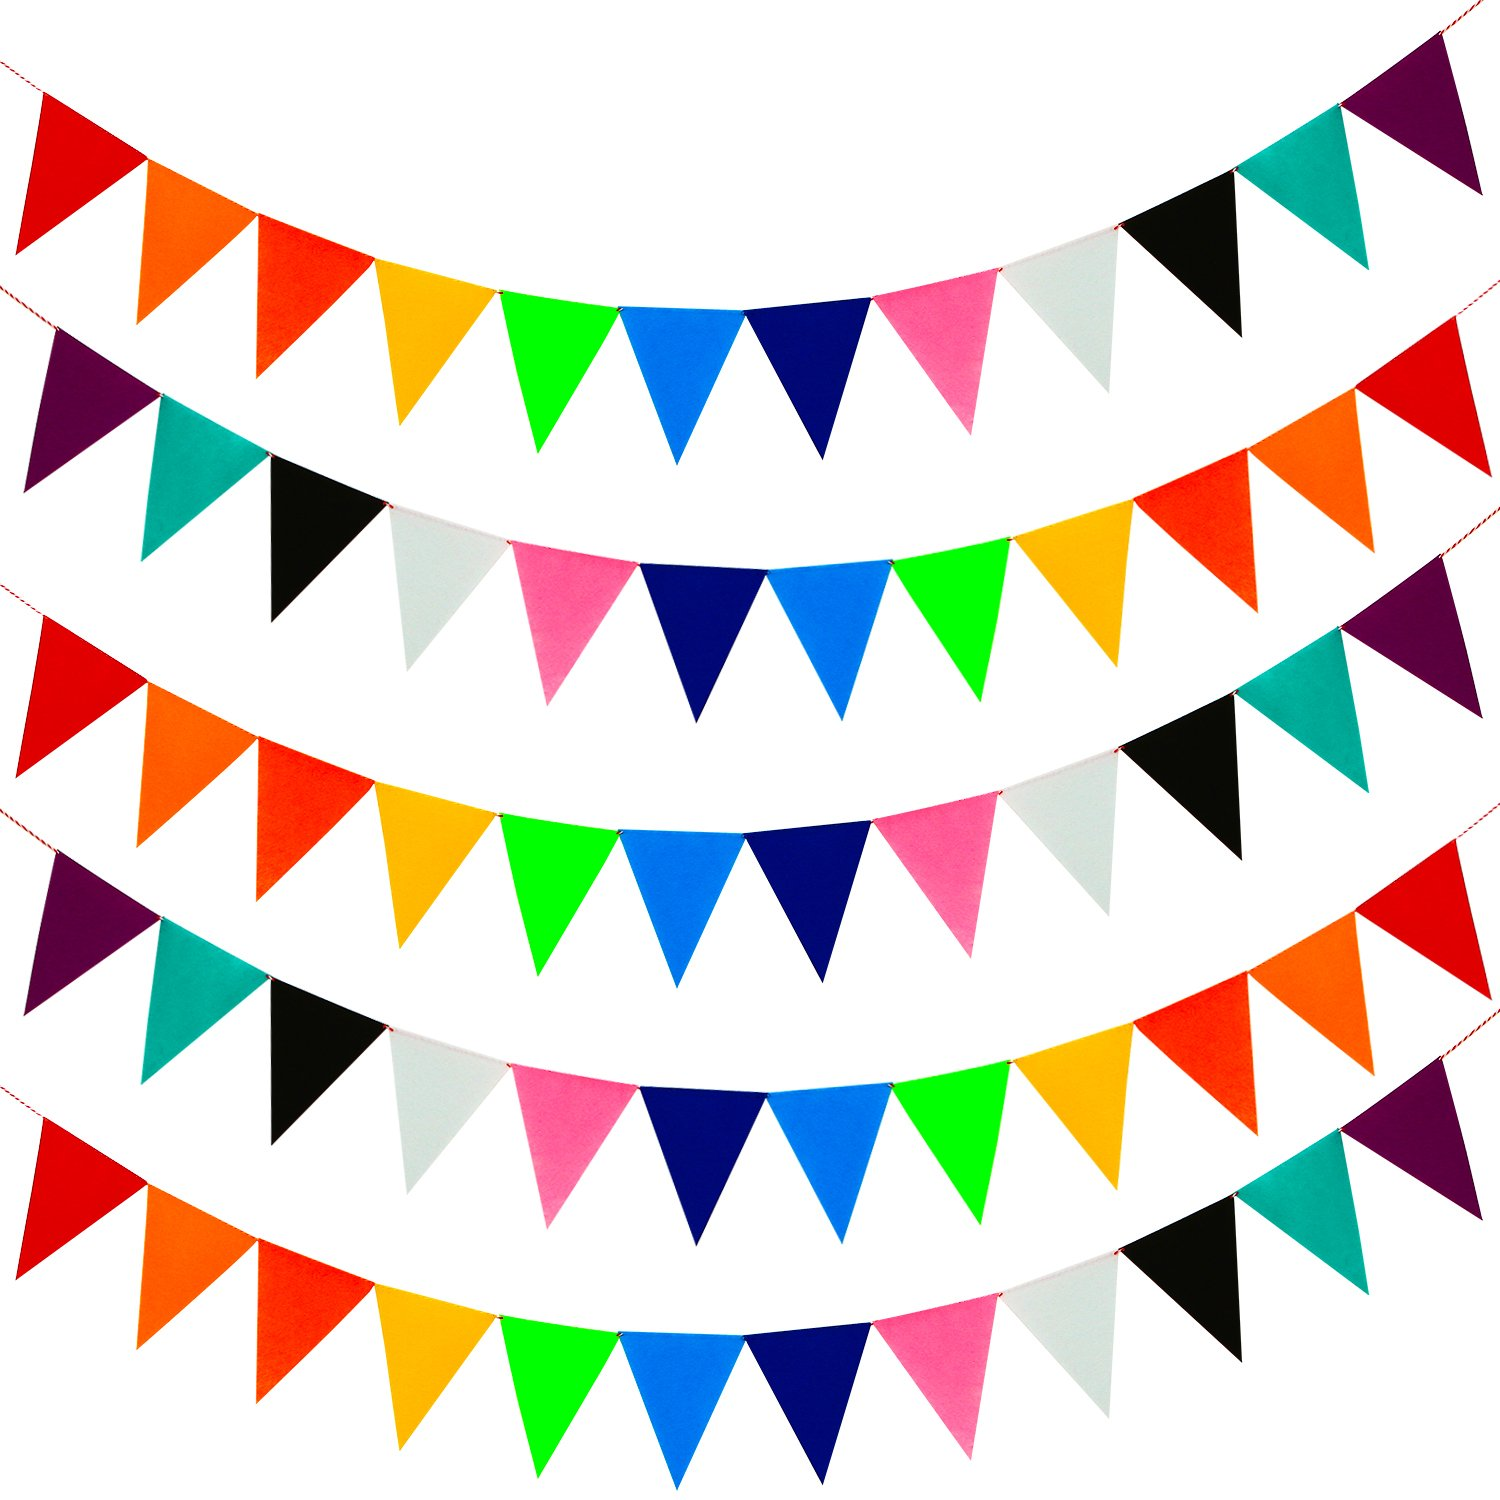 Coobey 60 Pieces/131.2 Feet Soft Felt Cloth Banners Fabric Bunting Banners for Birthday Party, Baby Shower, Wedding Decorations,12 Colors